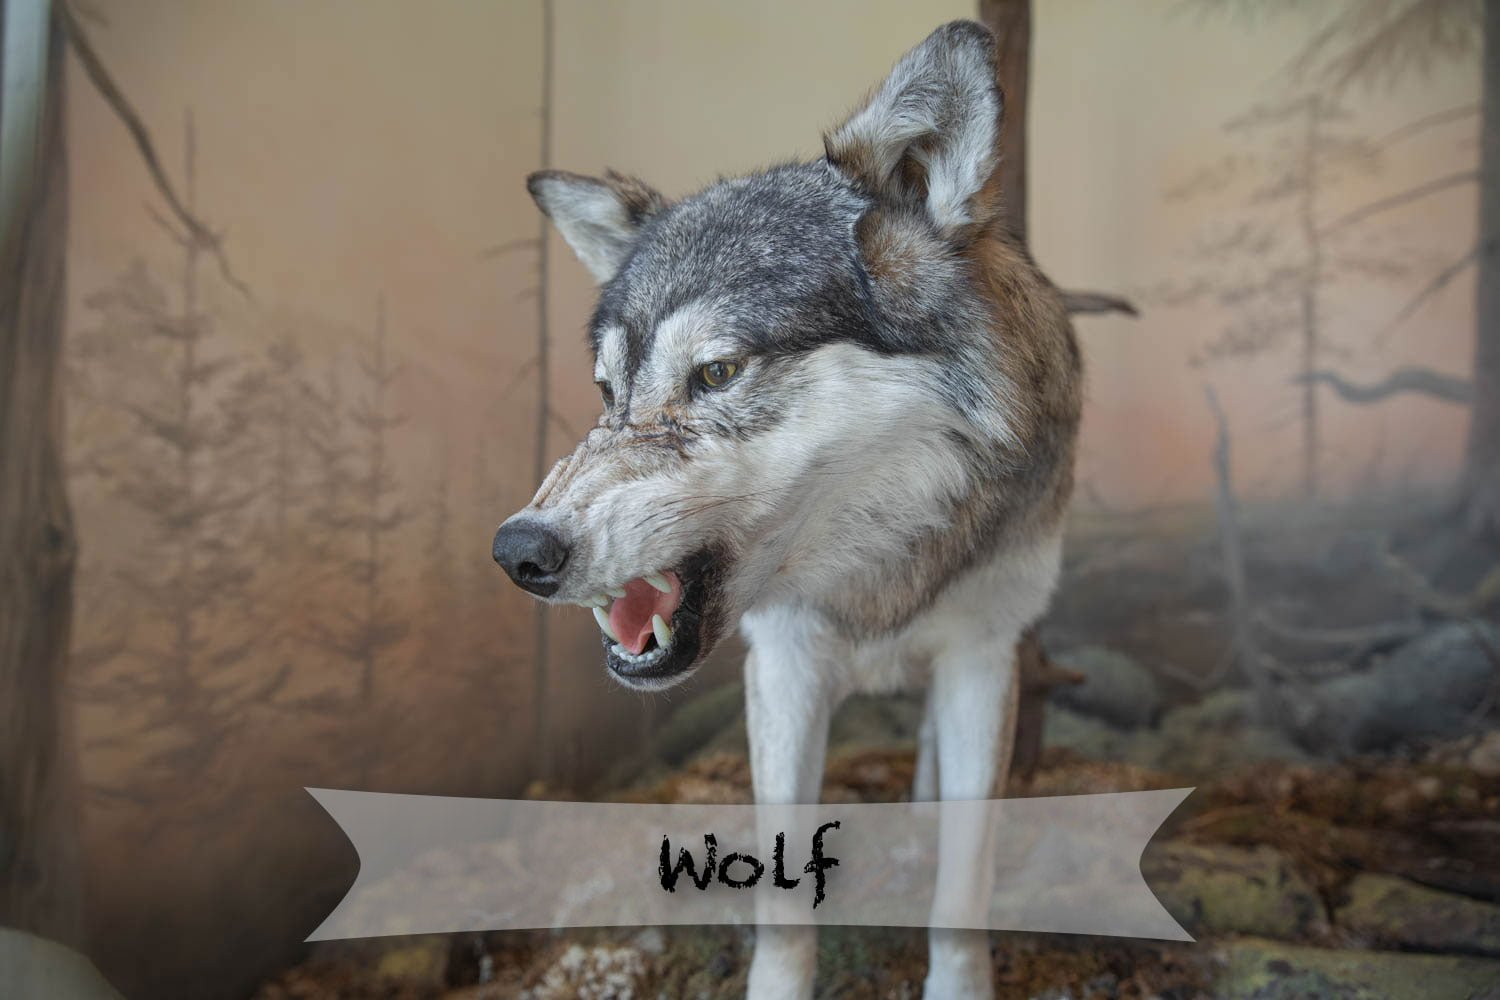 Orsa rovdjurspark - wolf in a display